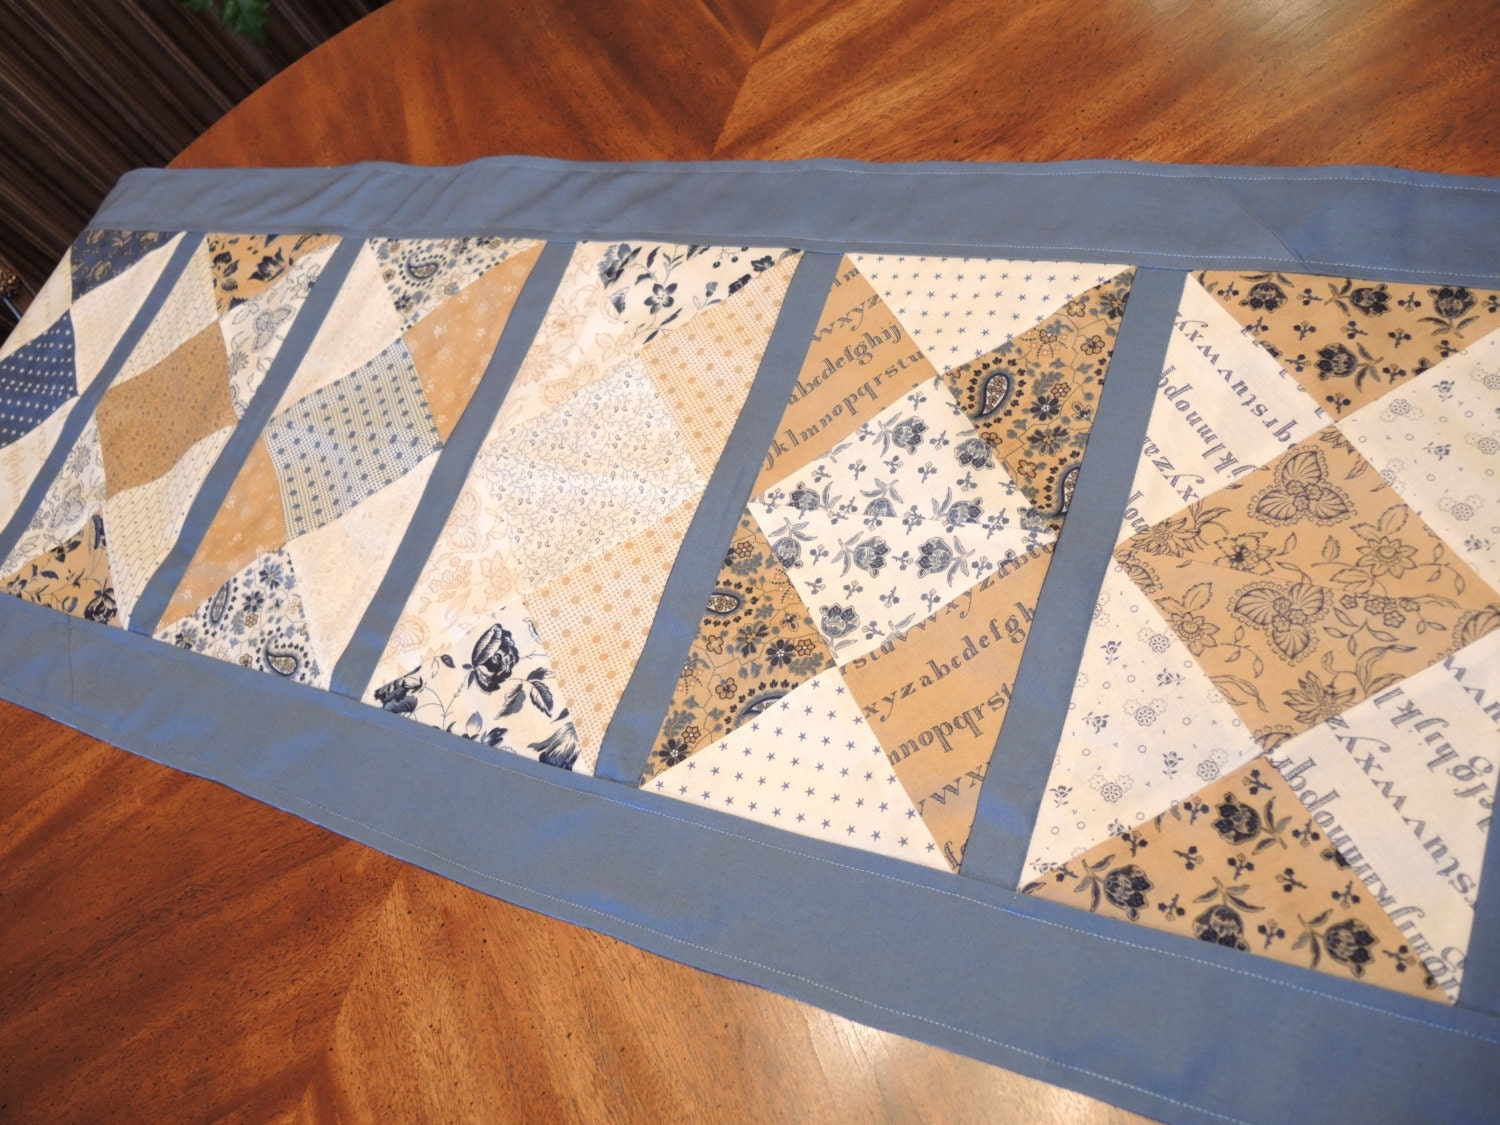 Modern Patchwork Table Runner Table Linens Kitchen amp Dining : ilfullxfull712699422itax from www.etsy.com size 1500 x 1125 jpeg 444kB